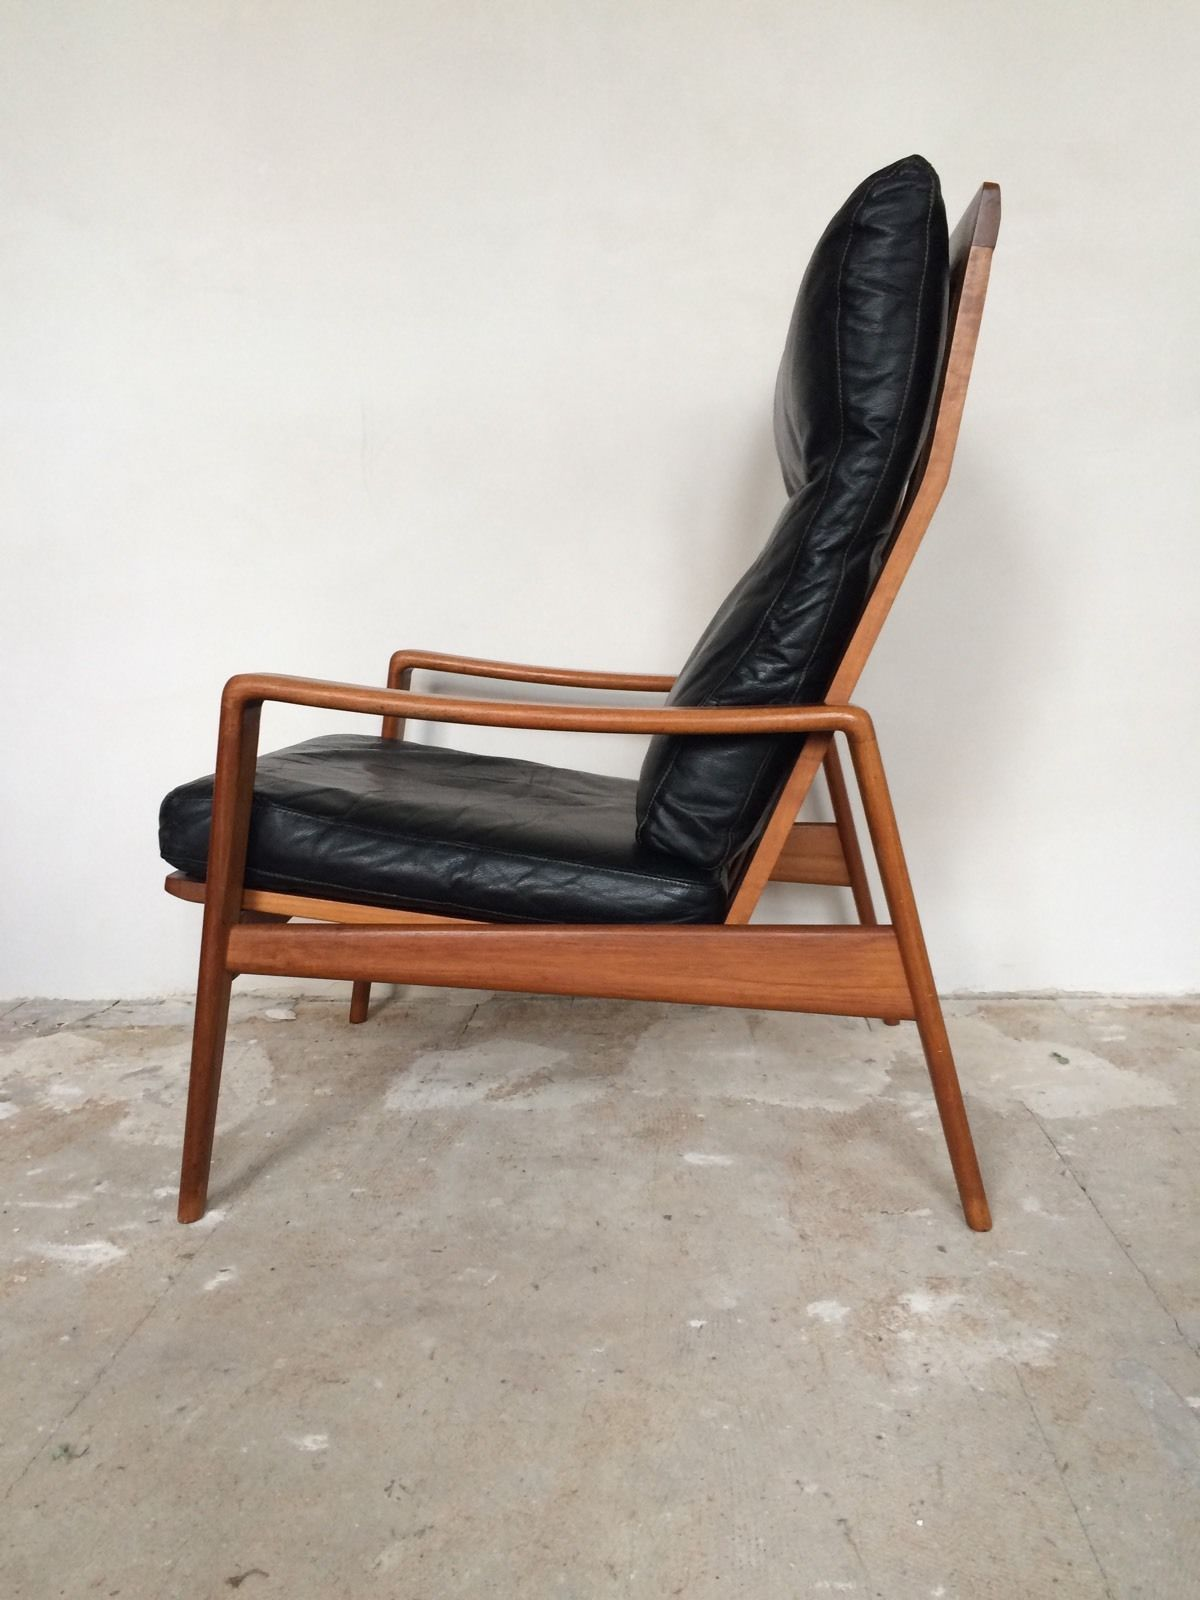 Arne wahl iversen komfort lounge chair teak 60s danish for Sessel leder